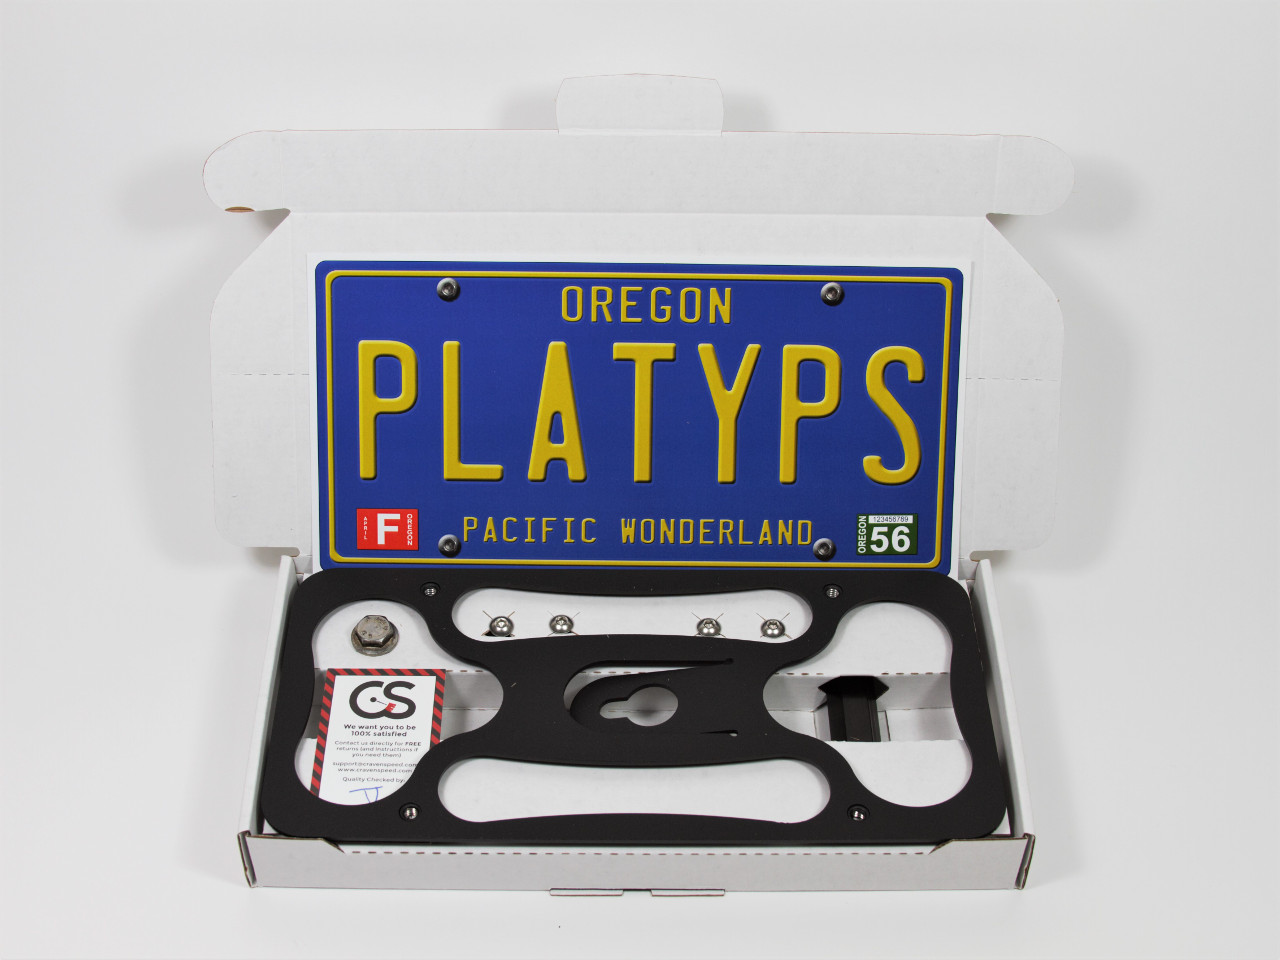 Assembled kit of The Platypus License Plate Mount for 2011-2013 BMW 335is Coupe and Convertible